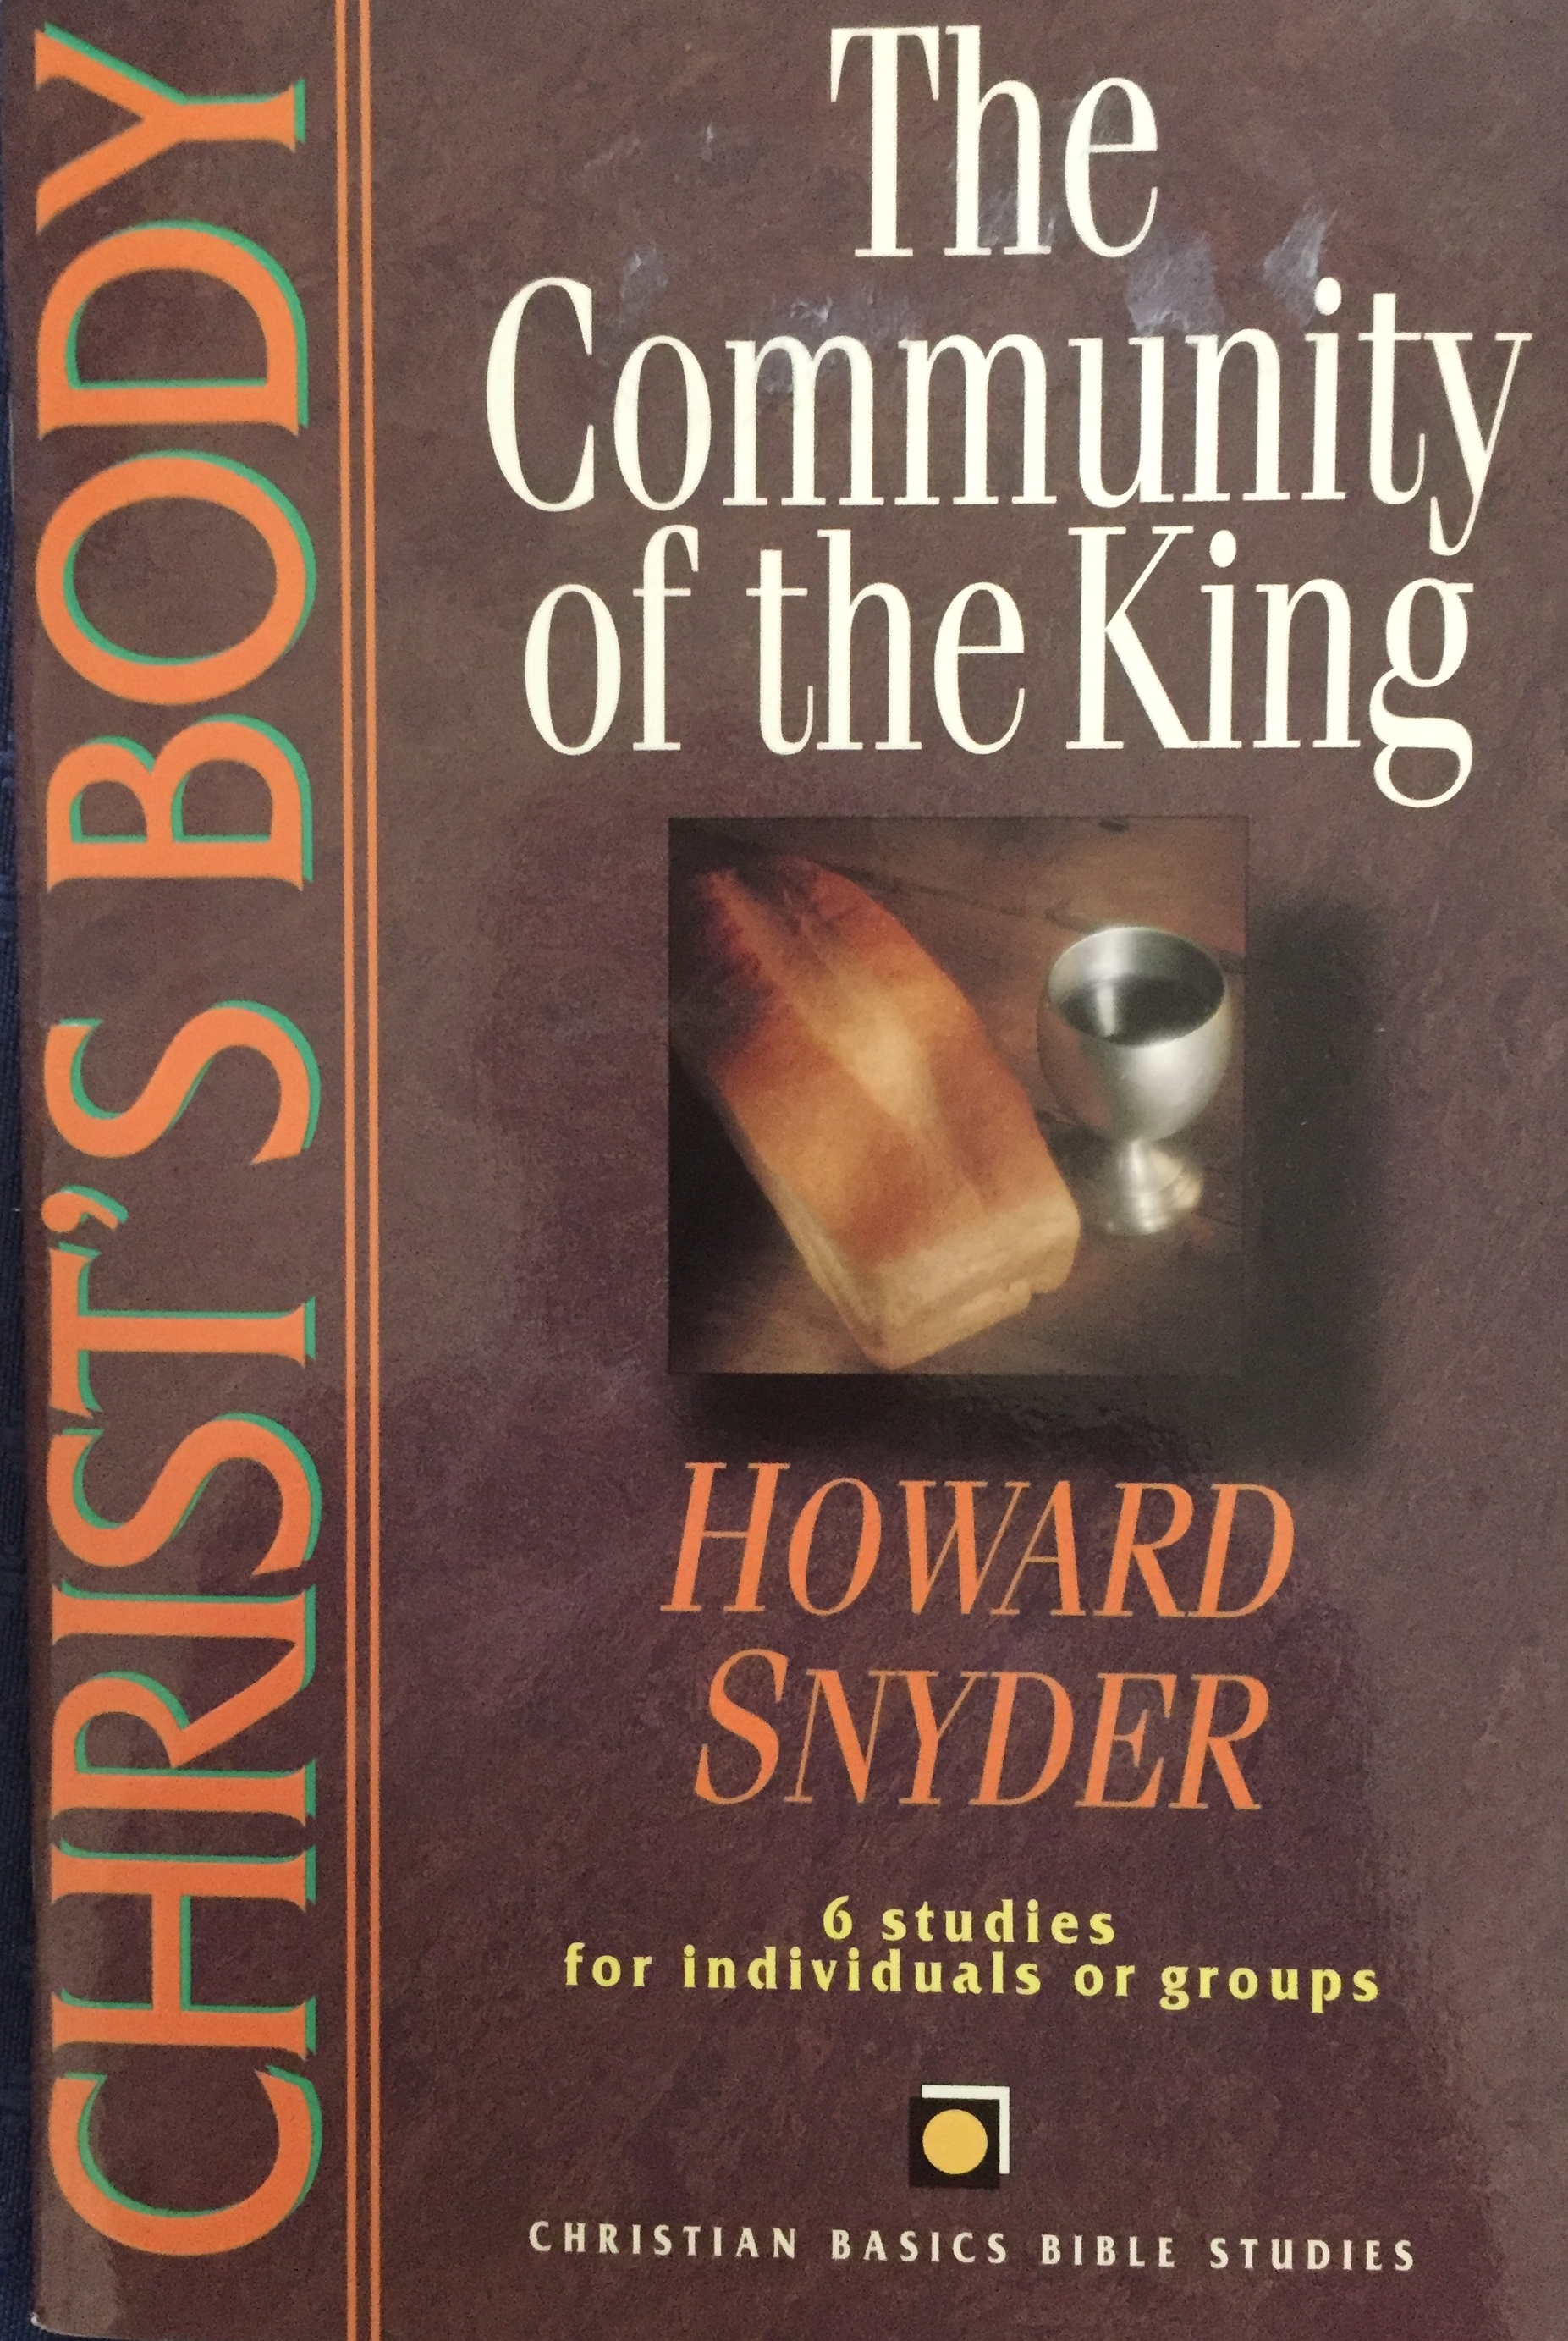 Christ's body: The community of the king